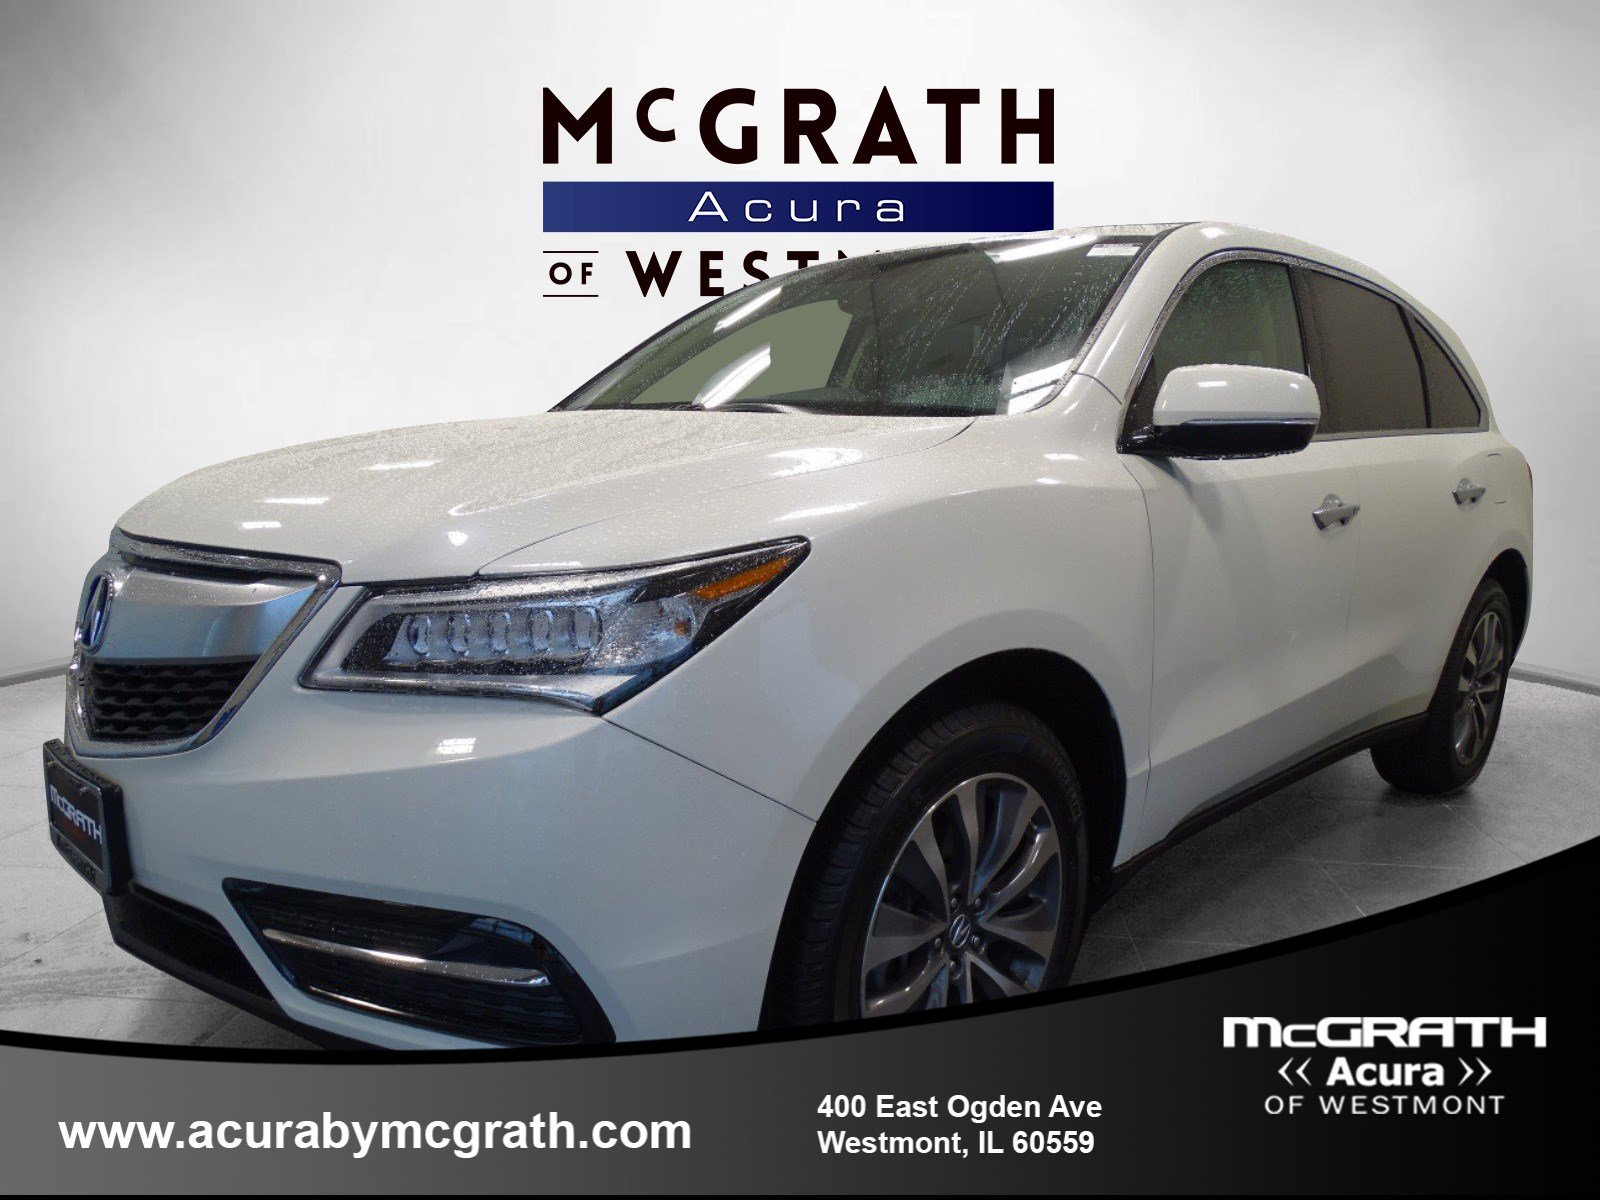 2015 Acura Mdx Trailer Hitch 2014 Wiring Harness Certified Pre Owned Tech Entertainment Pkg 1600x1200